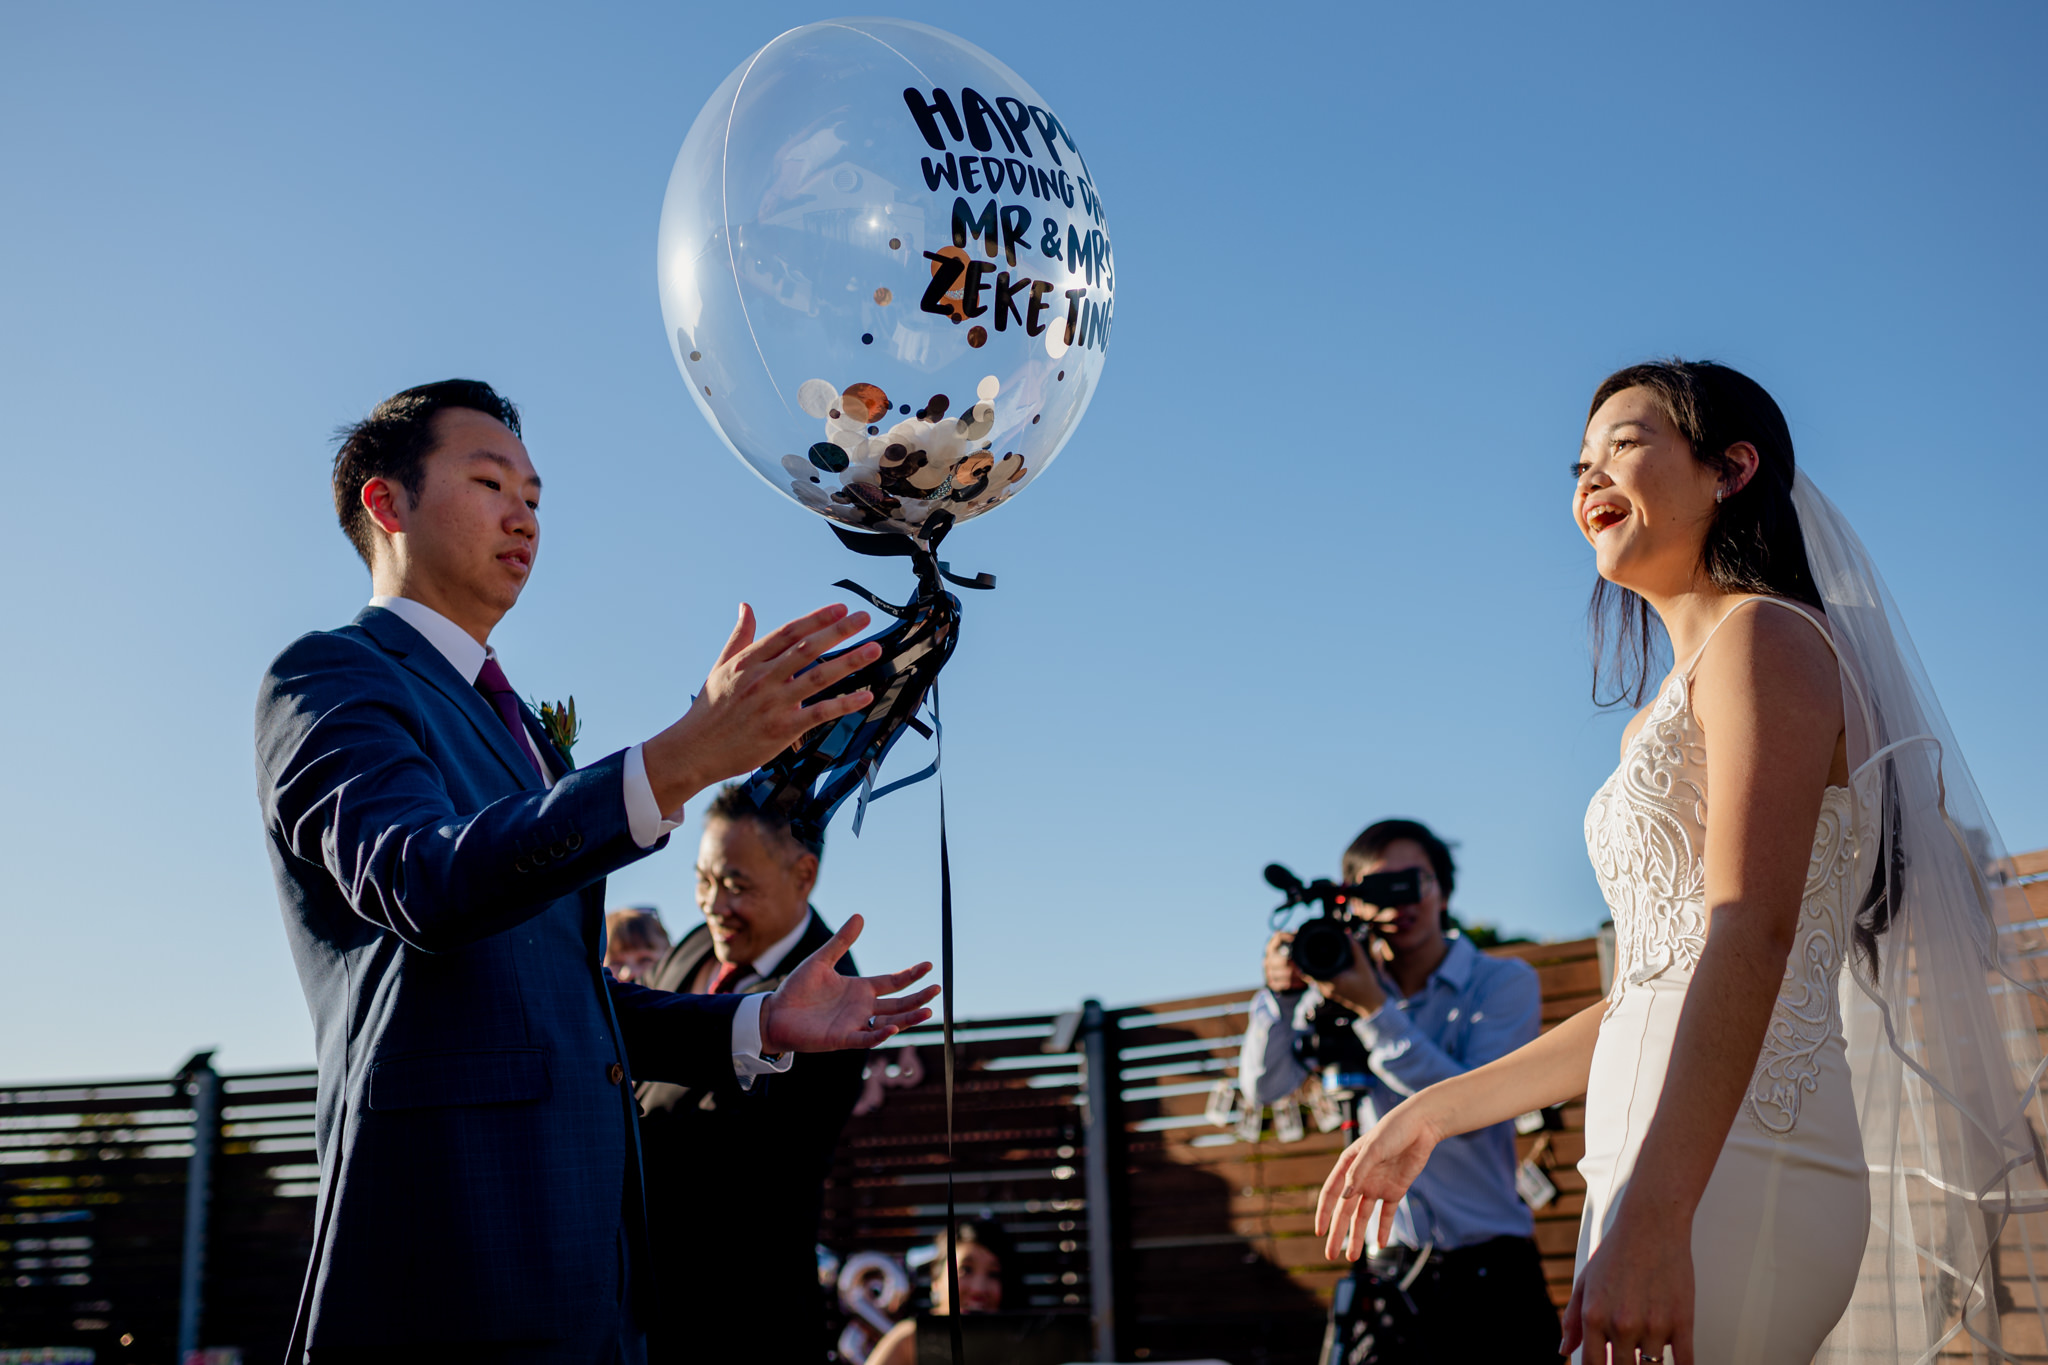 A bride smiles in surprise as a large balloon with text floats in the air